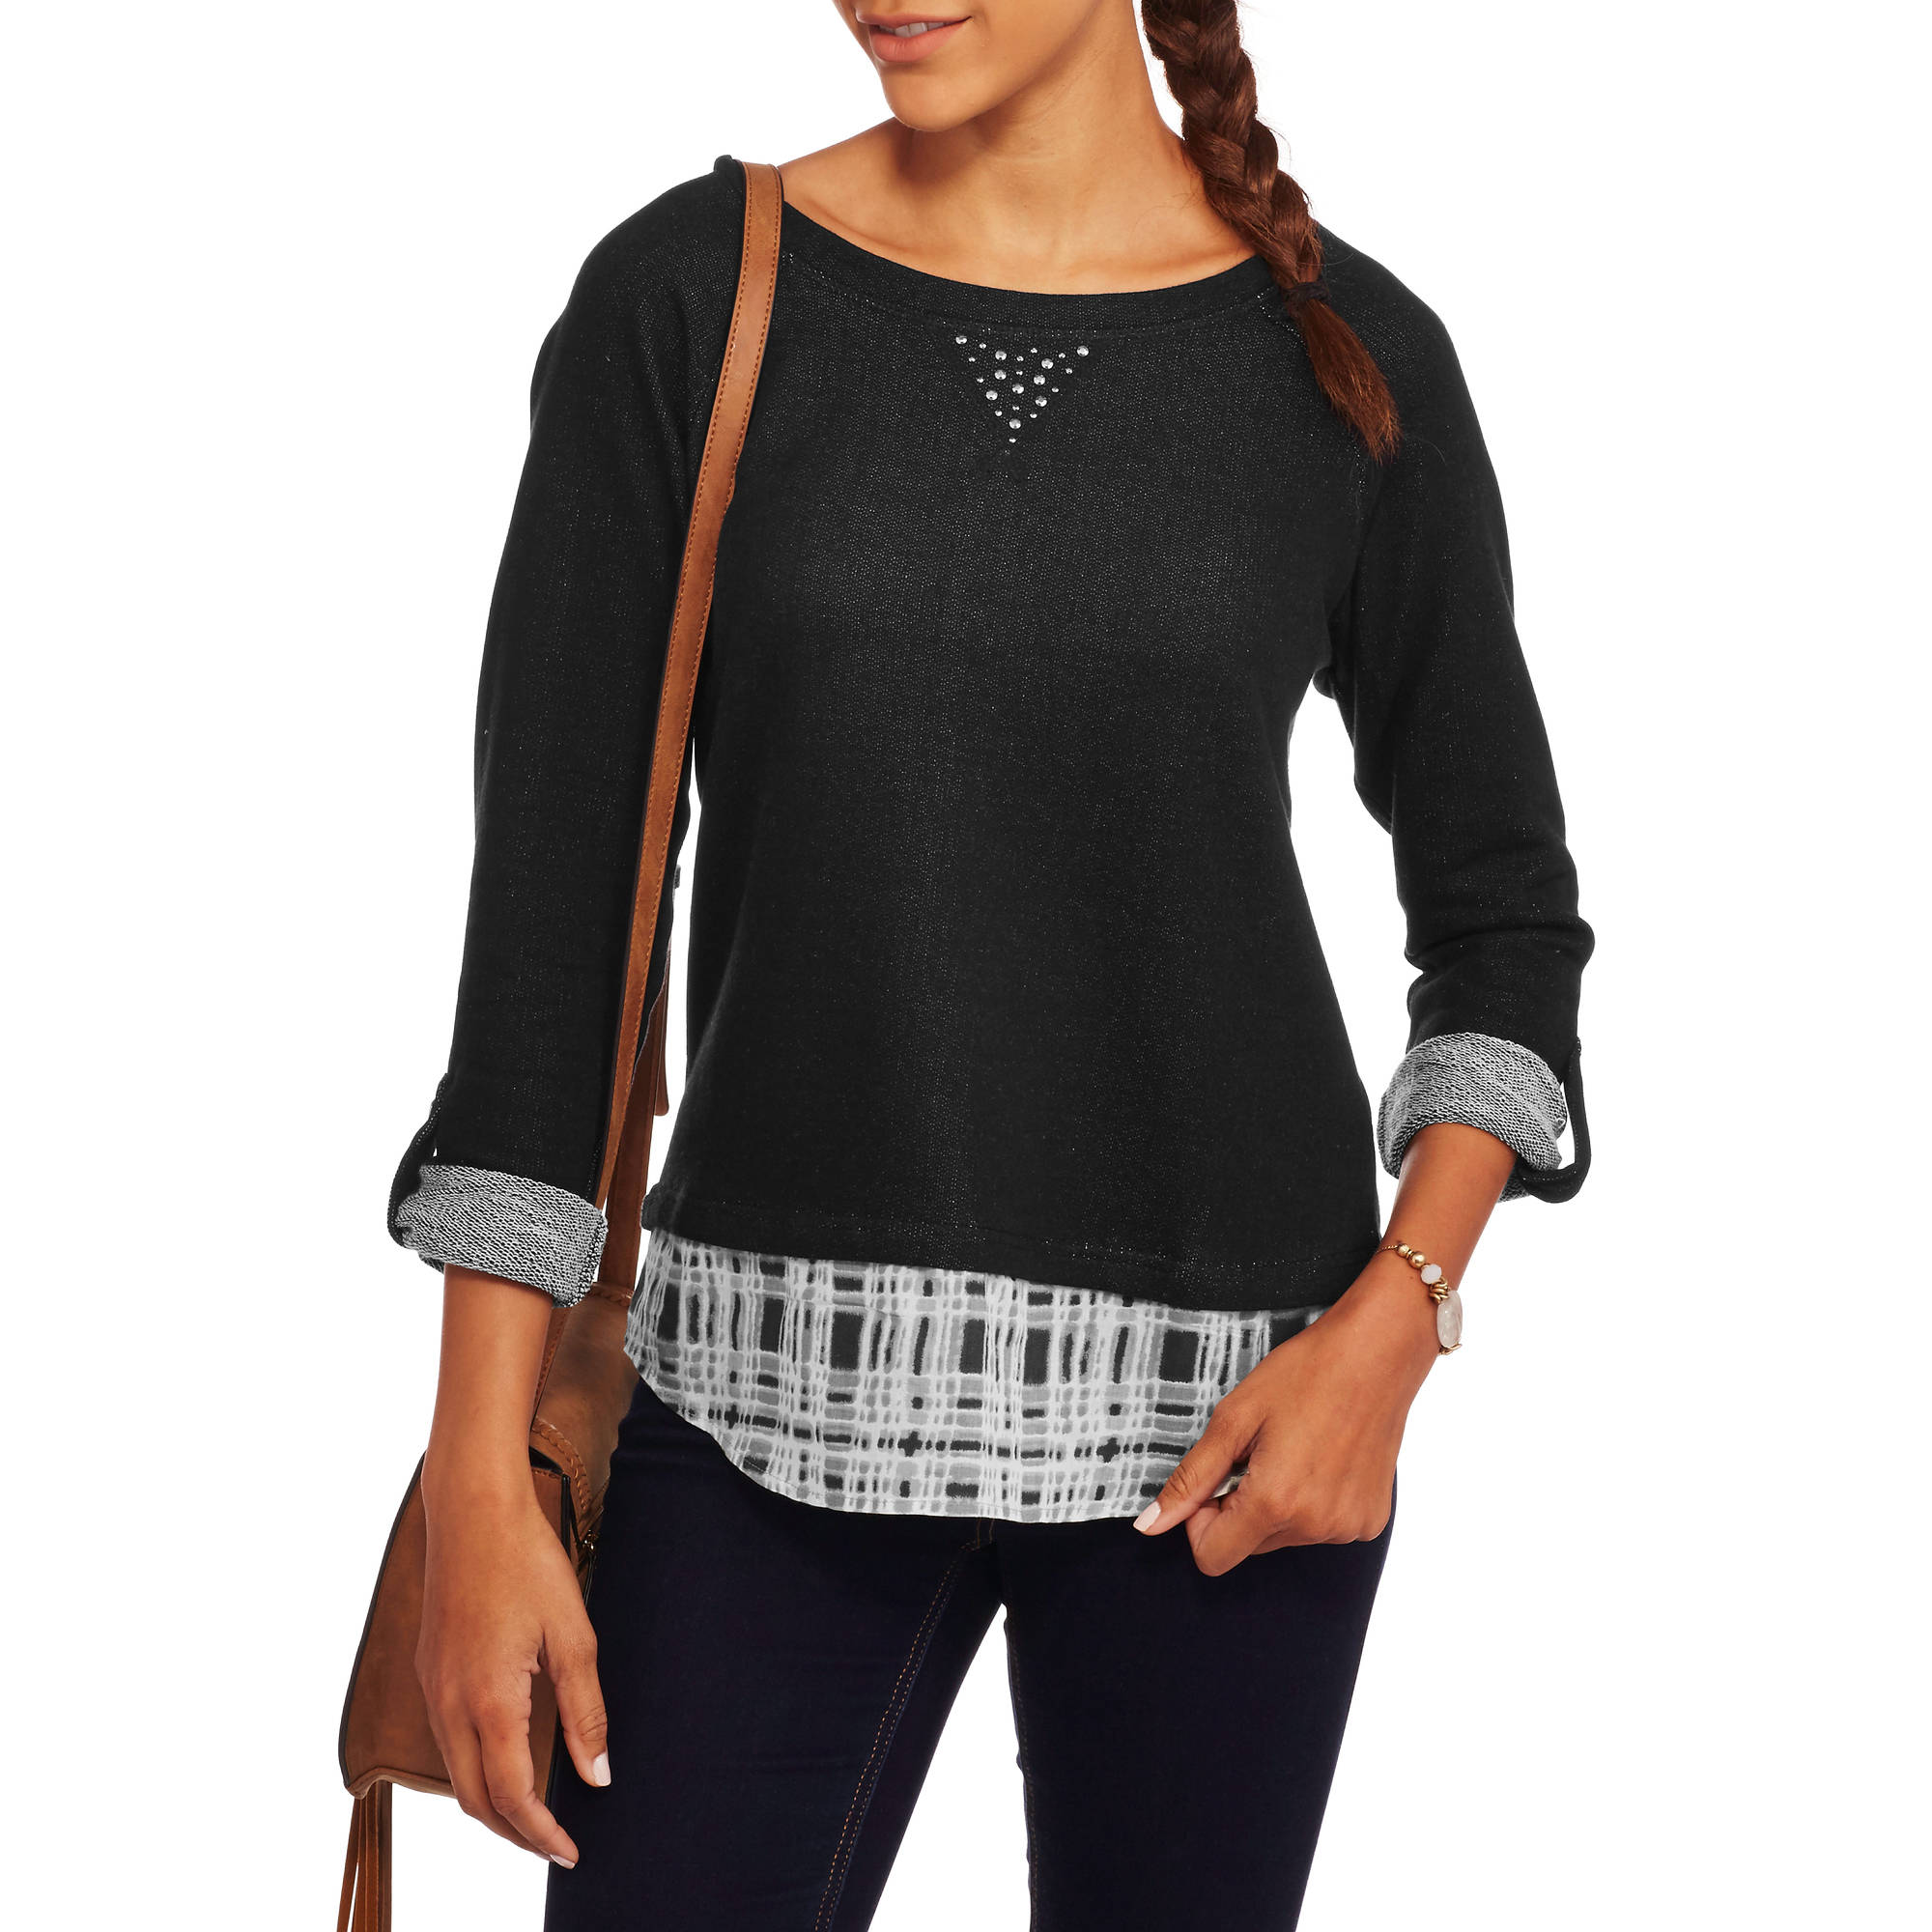 French Laundry Women's Fashion Sweatshirt 2fer Top